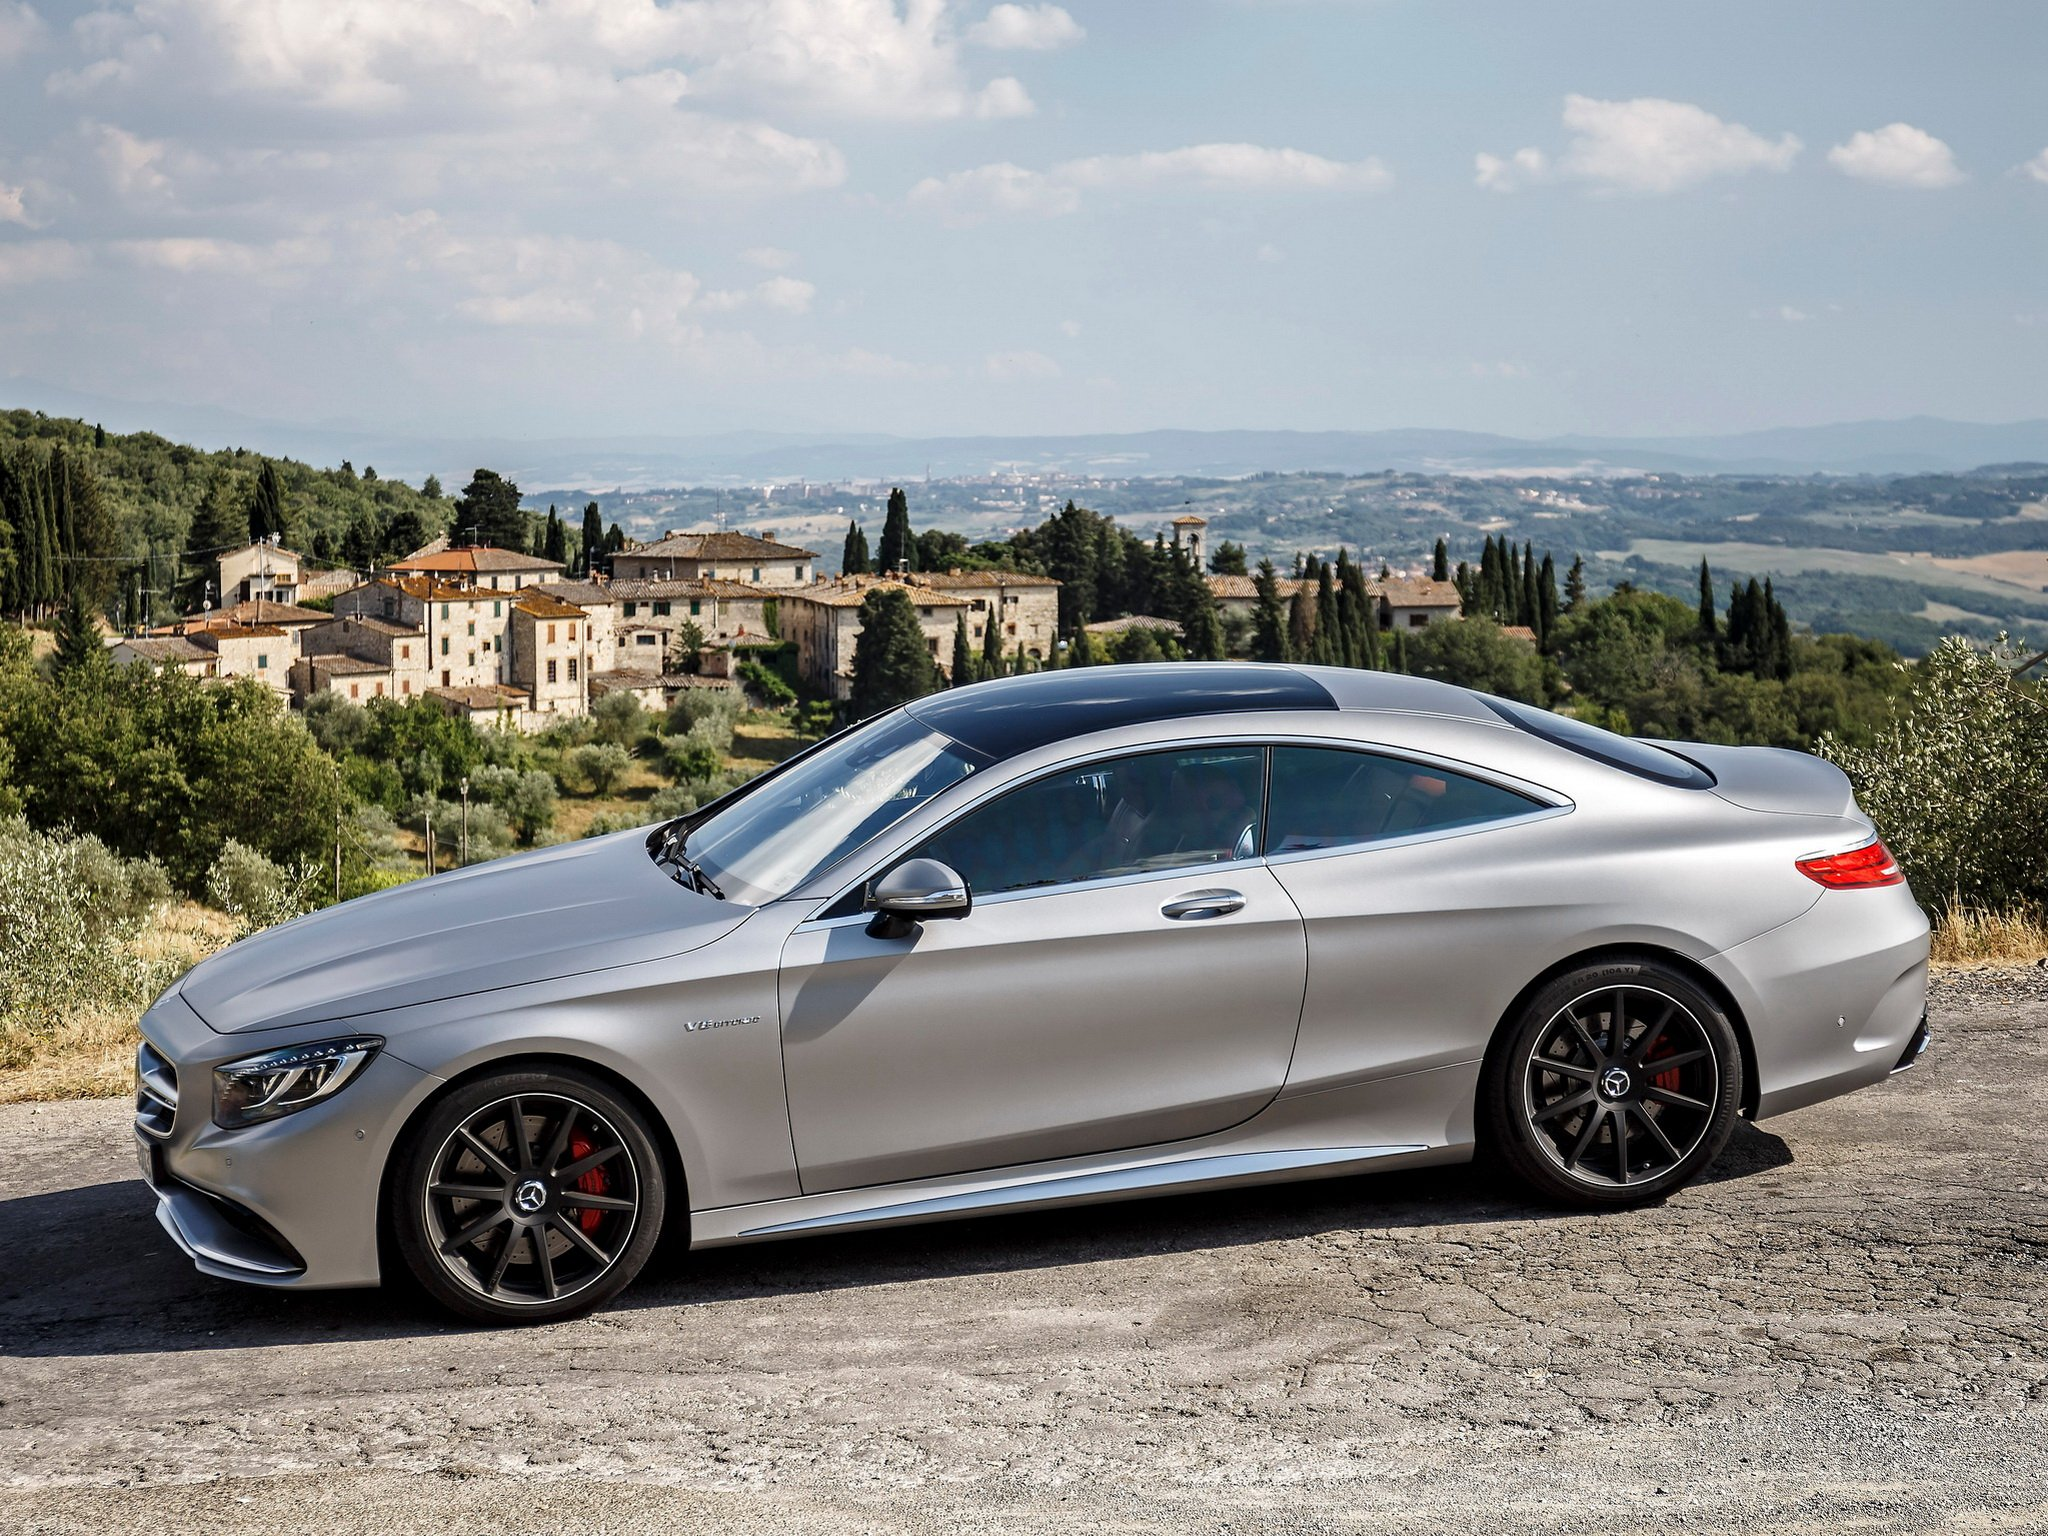 Mercedes Benz Amg S63 Wallpapers High Quality Download Free